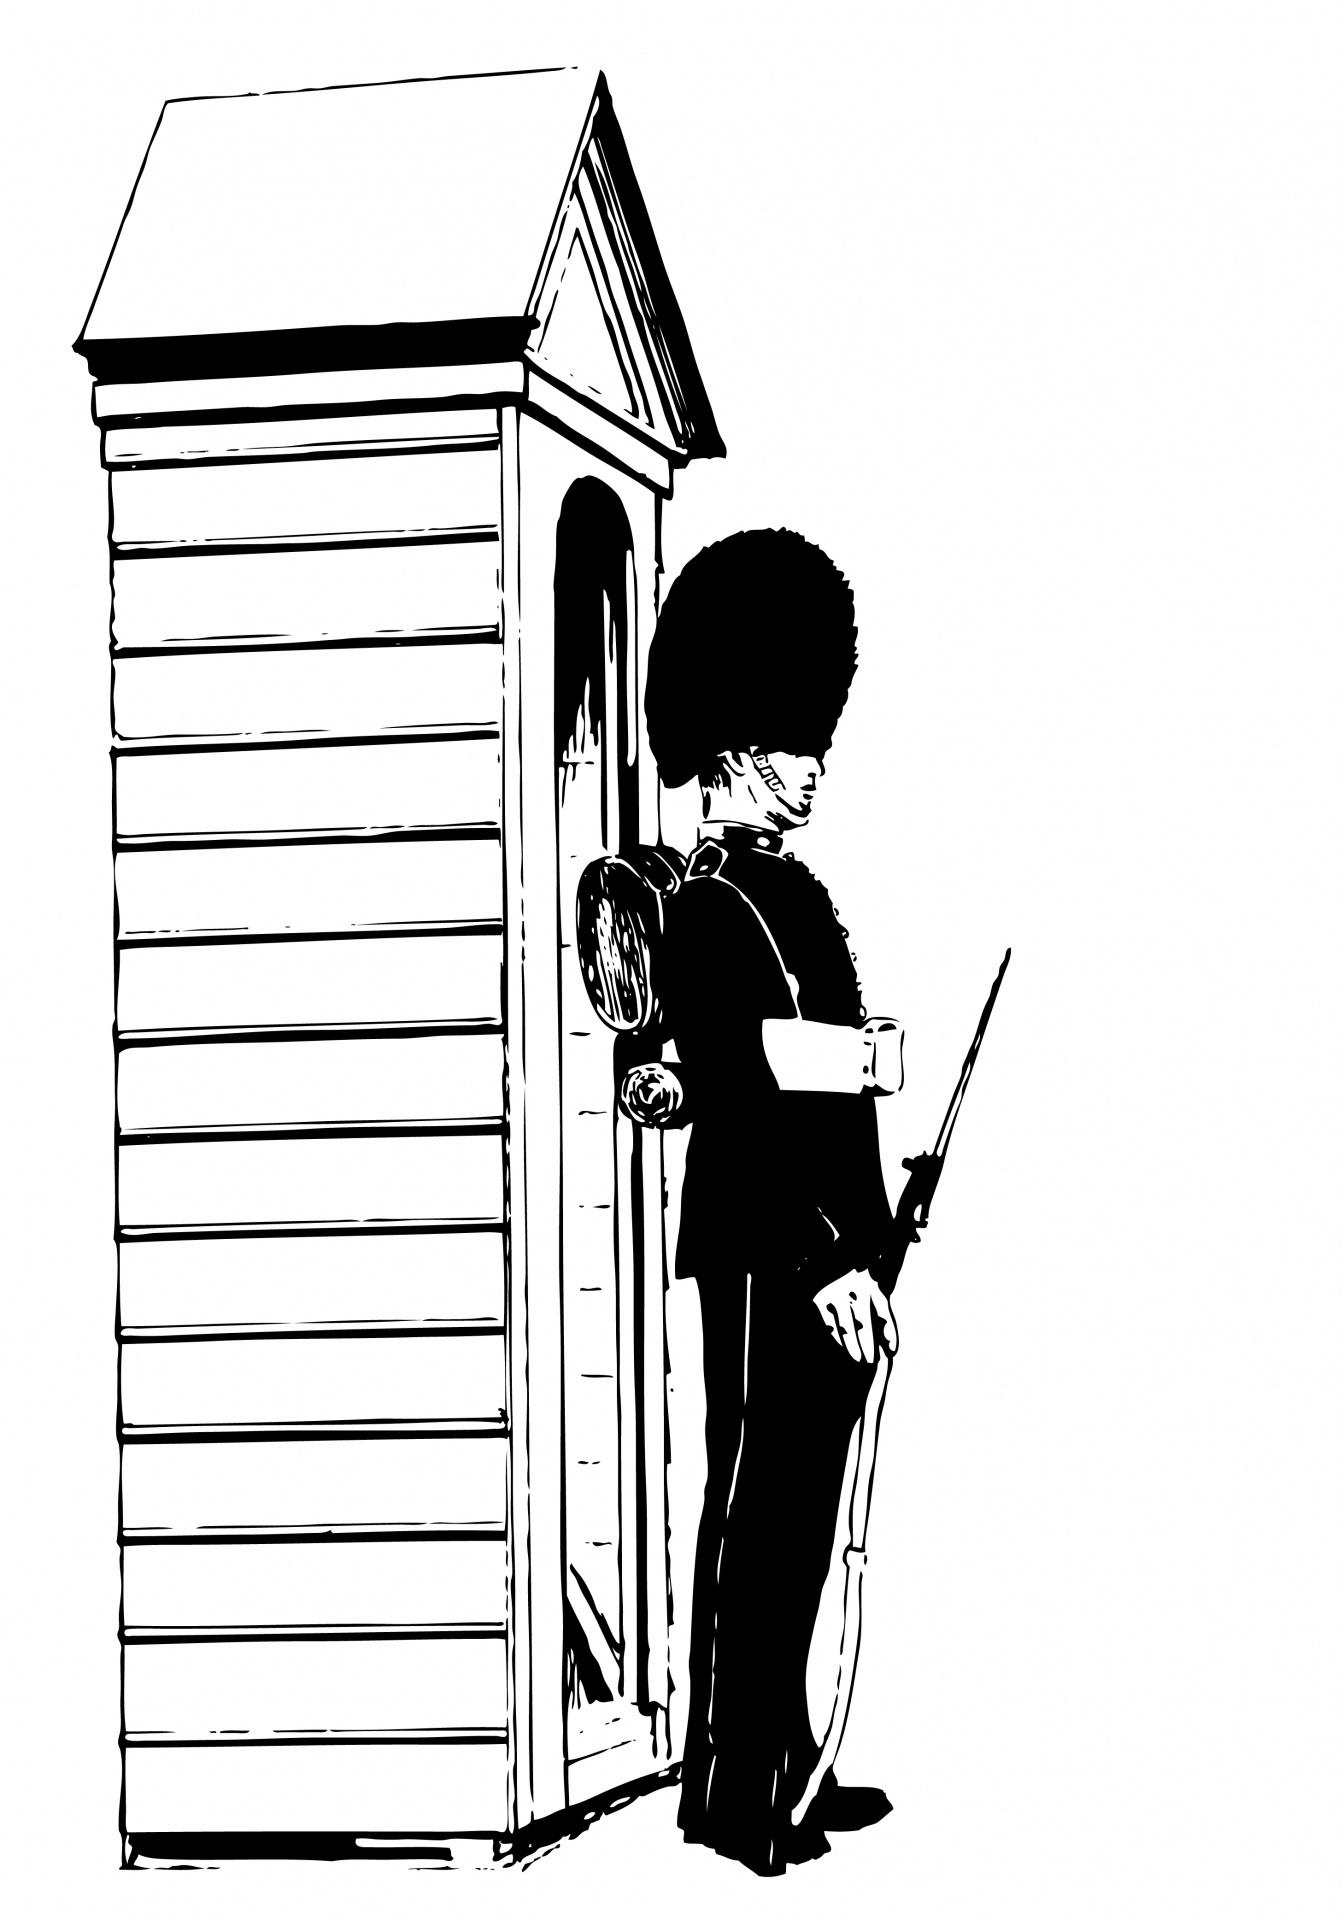 Sentry Guard Clipart Illustration Free Stock Photo.